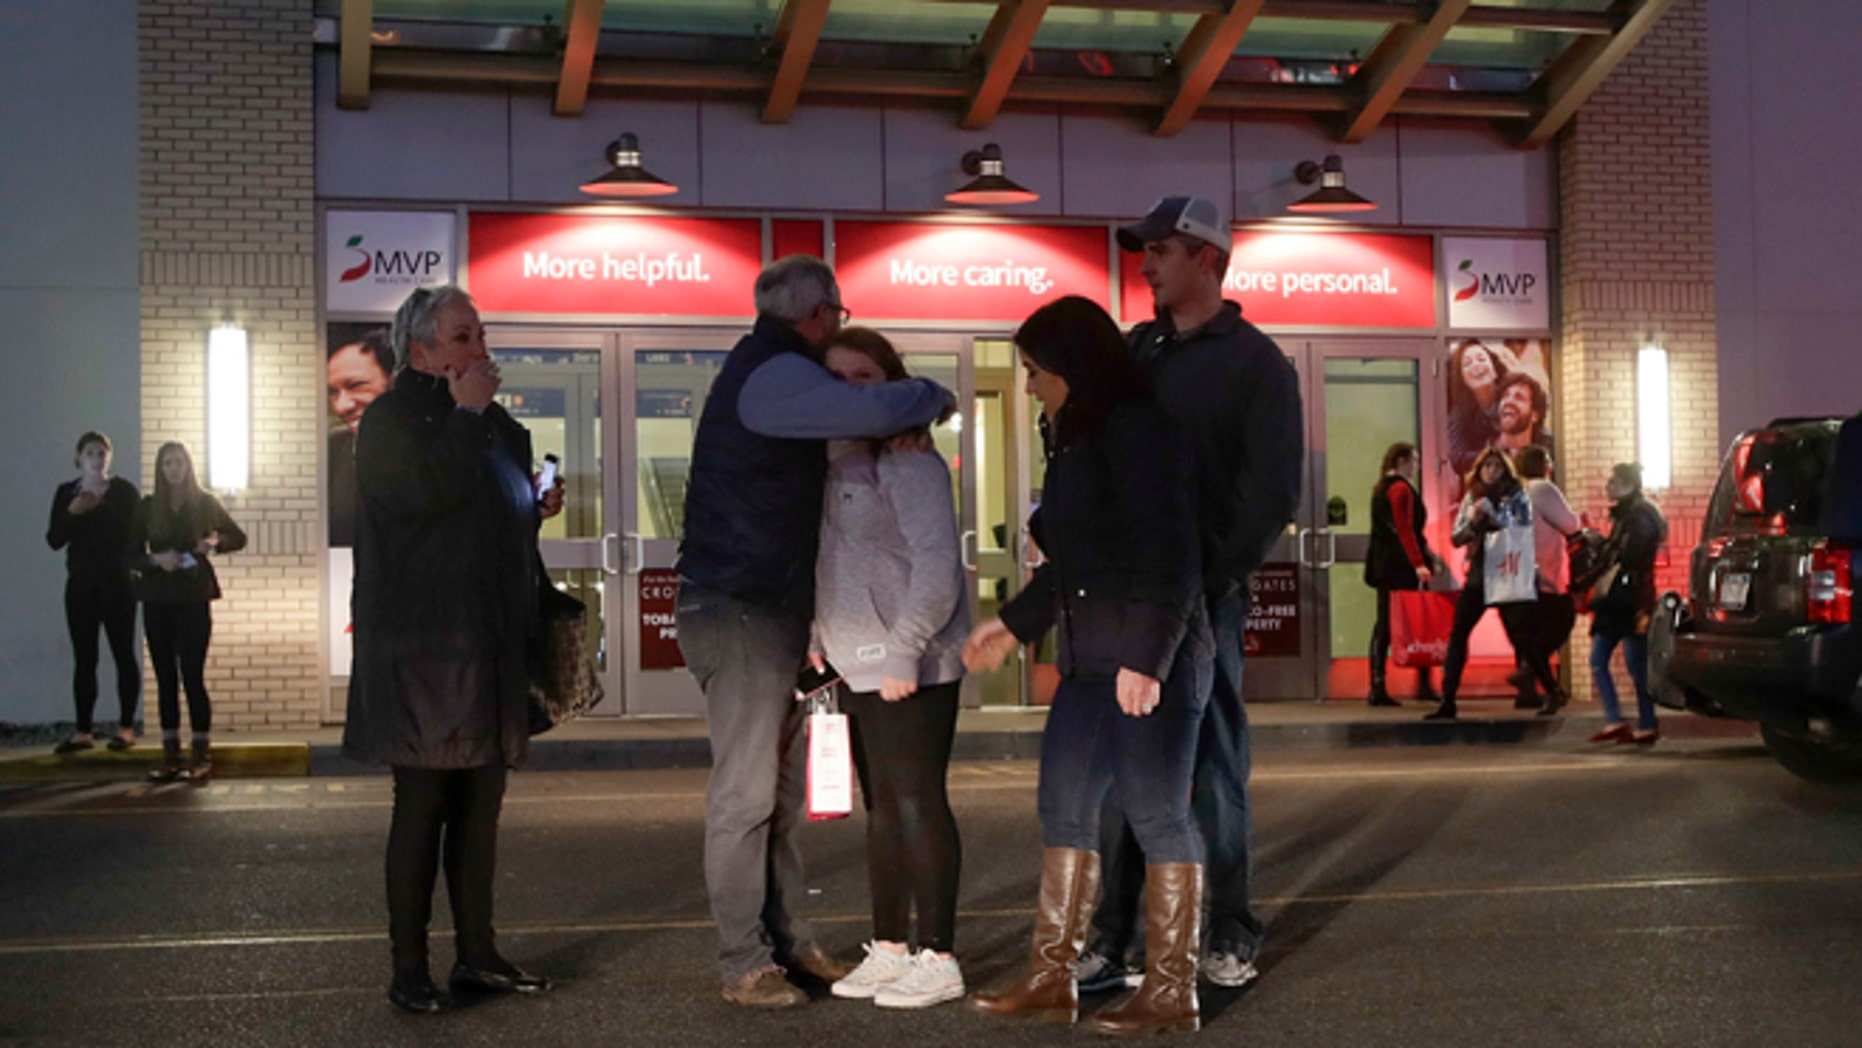 People embrace after leaving Crossgates Mall in Guilderland, N.Y., after reports of gunfire inside, Saturday, Nov. 12, 2016. The Albany Times-Union says hundreds of people were evacuated and the mall was locked down. (AP Photo/Michael Groll)